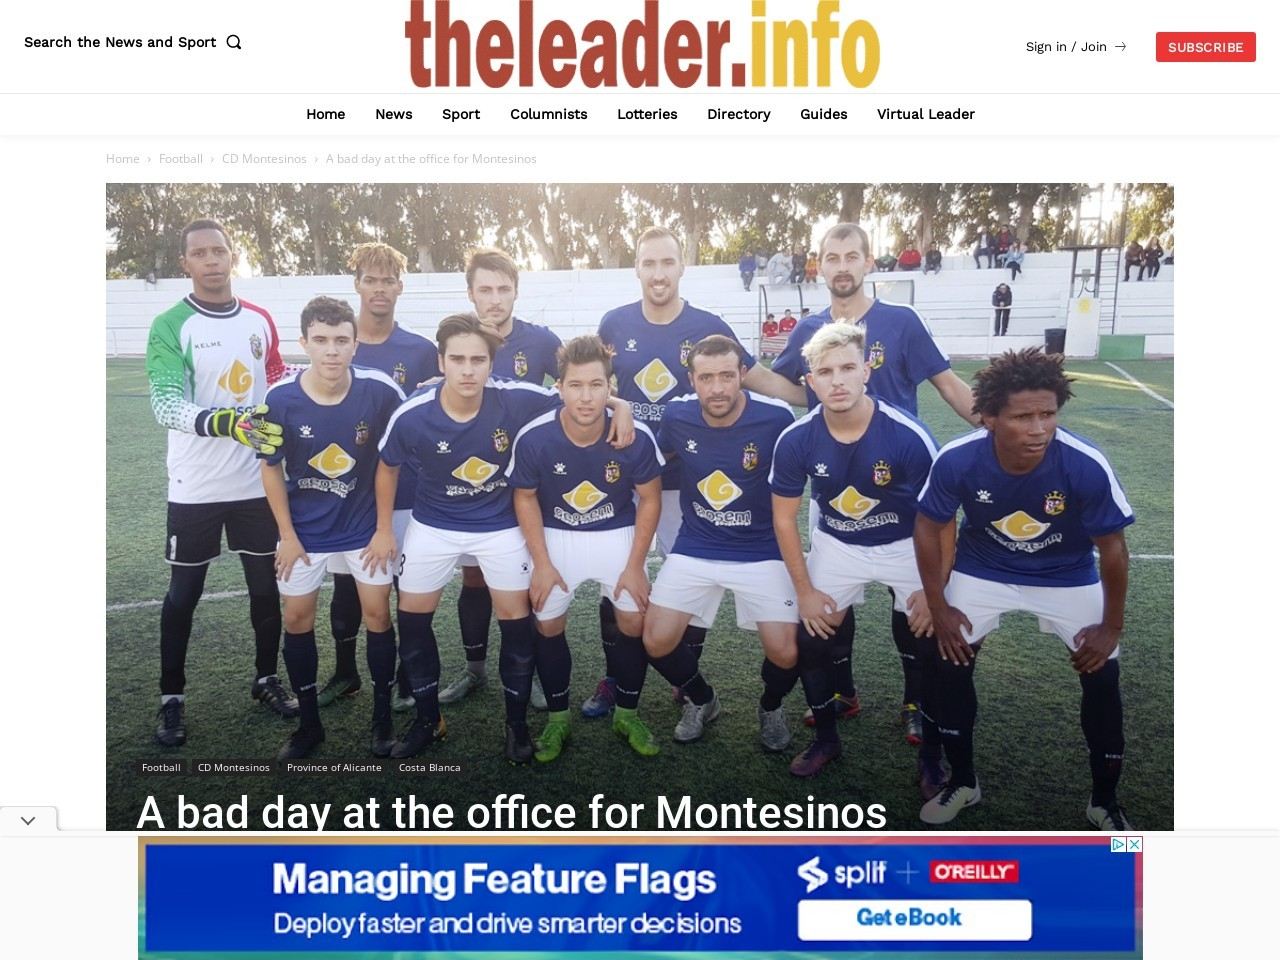 A bad day at the office for Montesinos